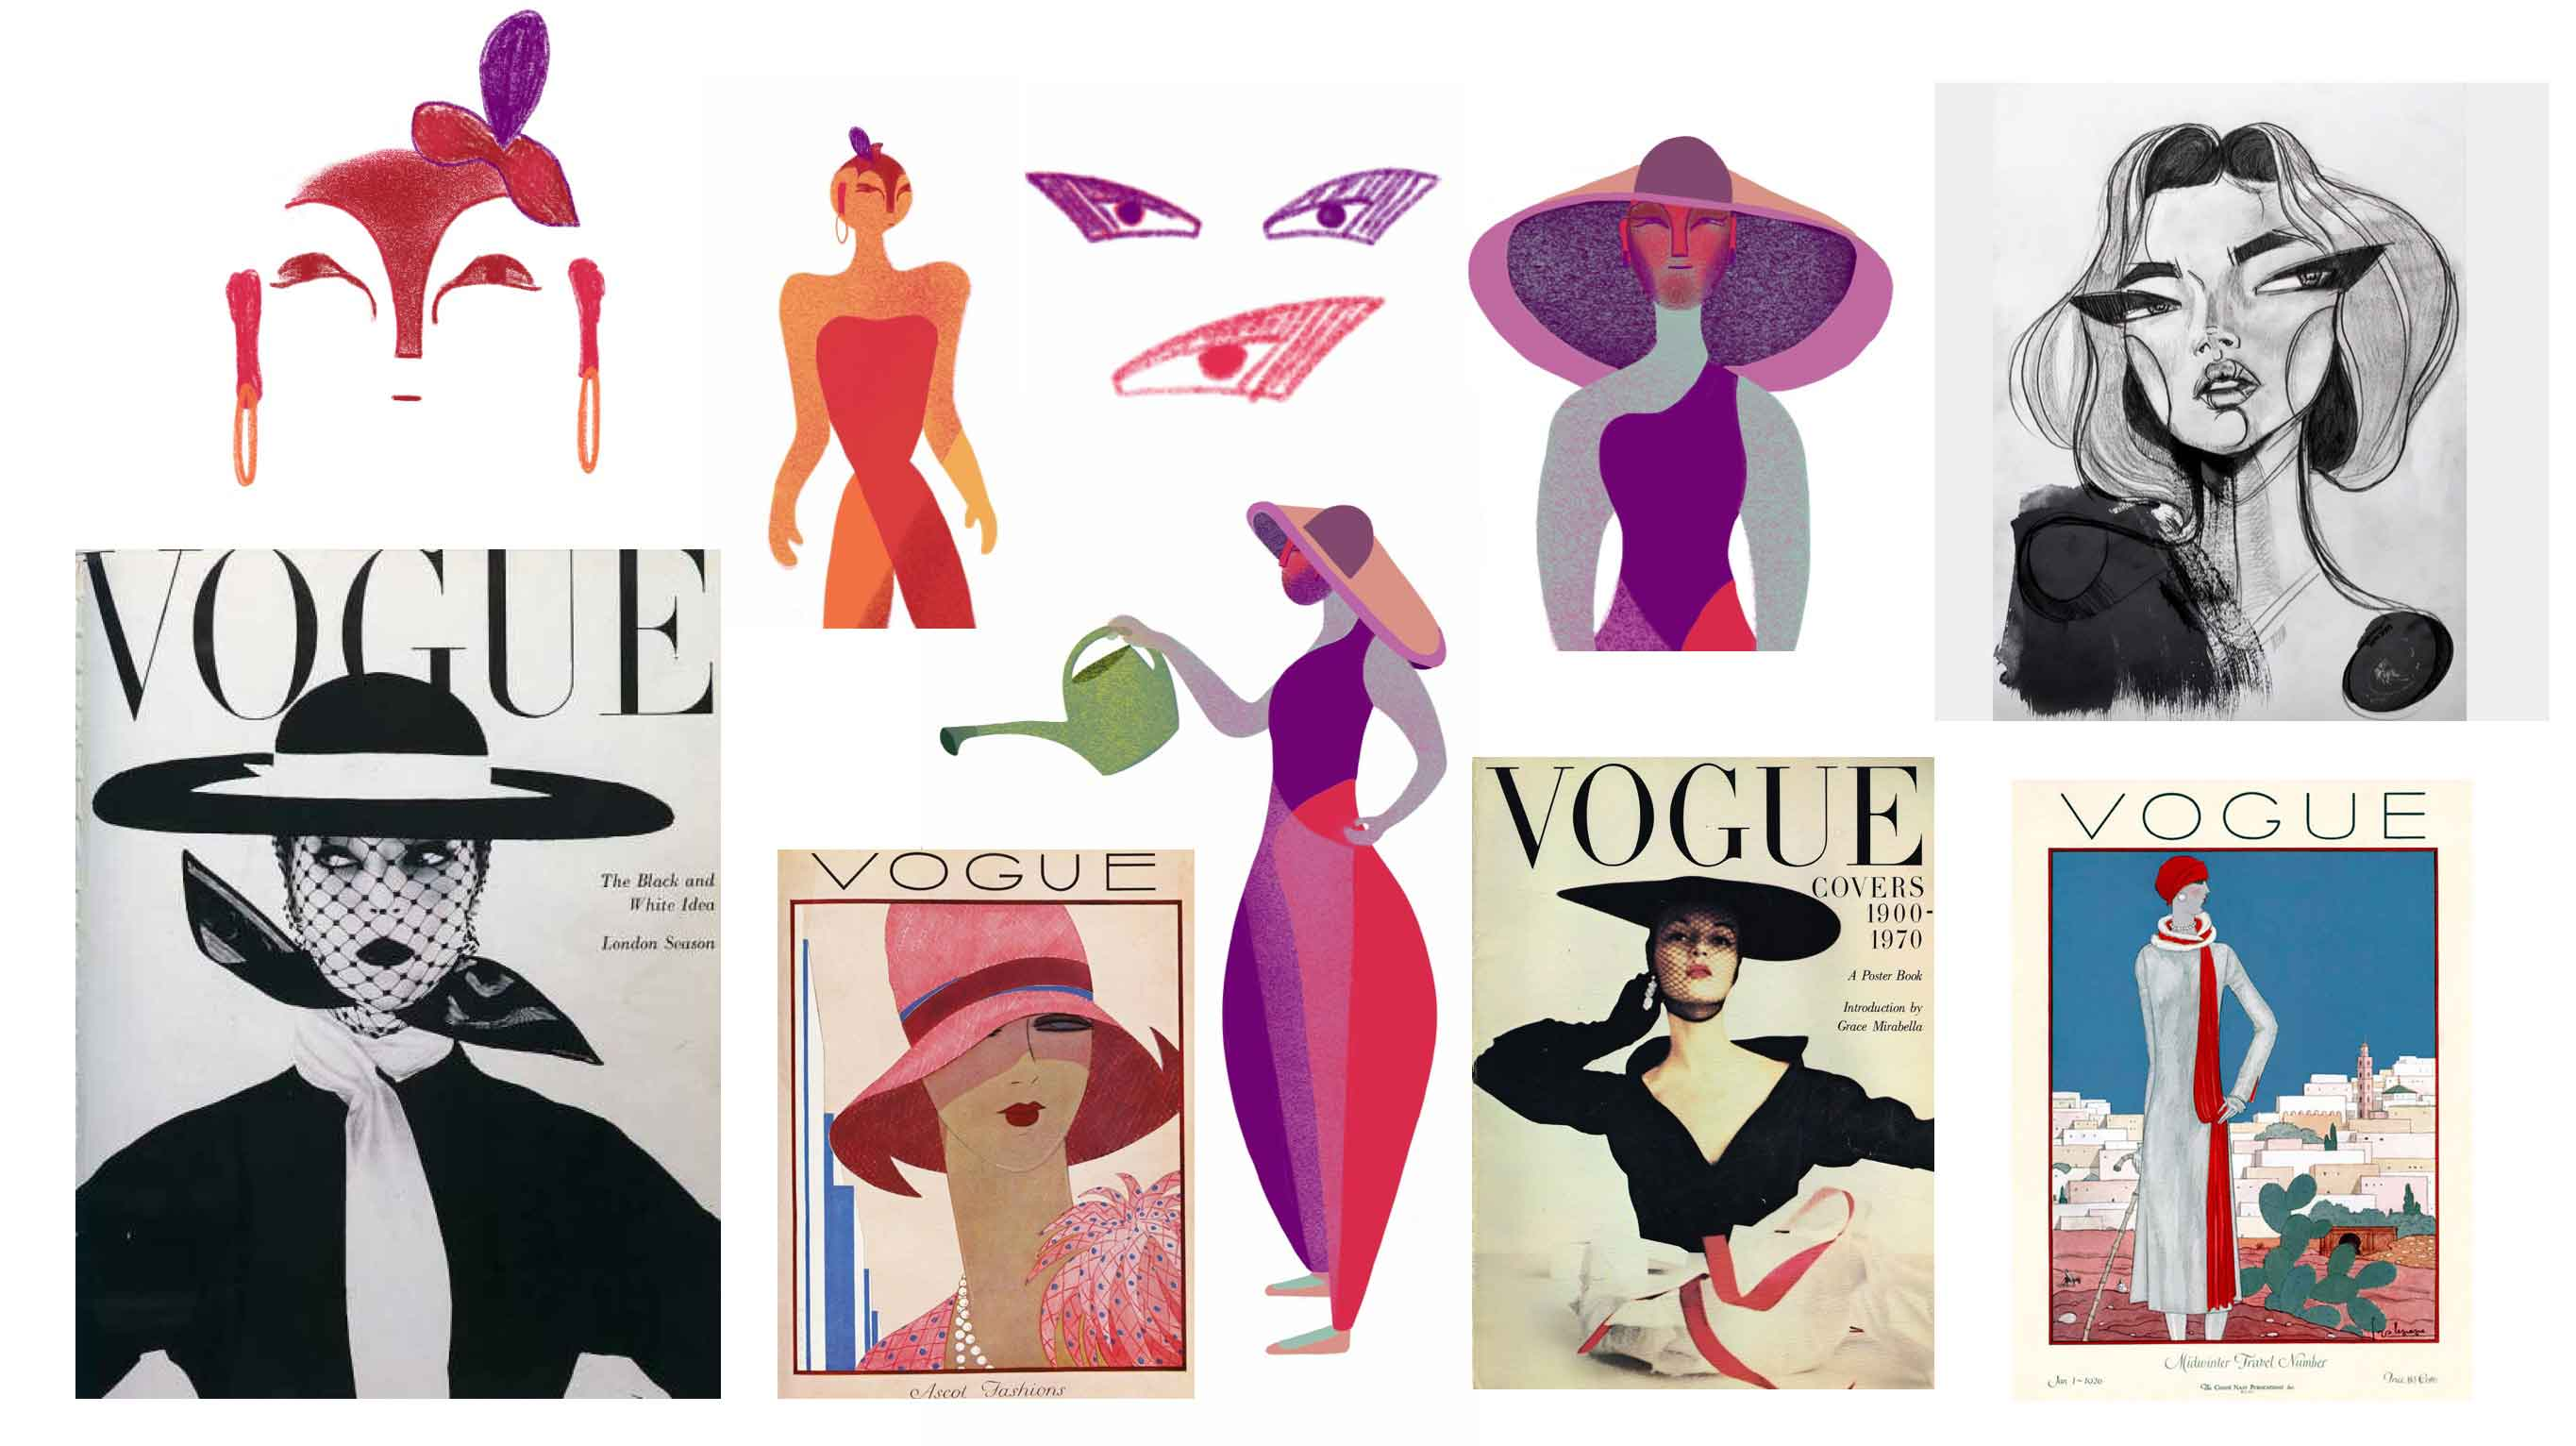 Worksheet looking at Vogue magazine covers